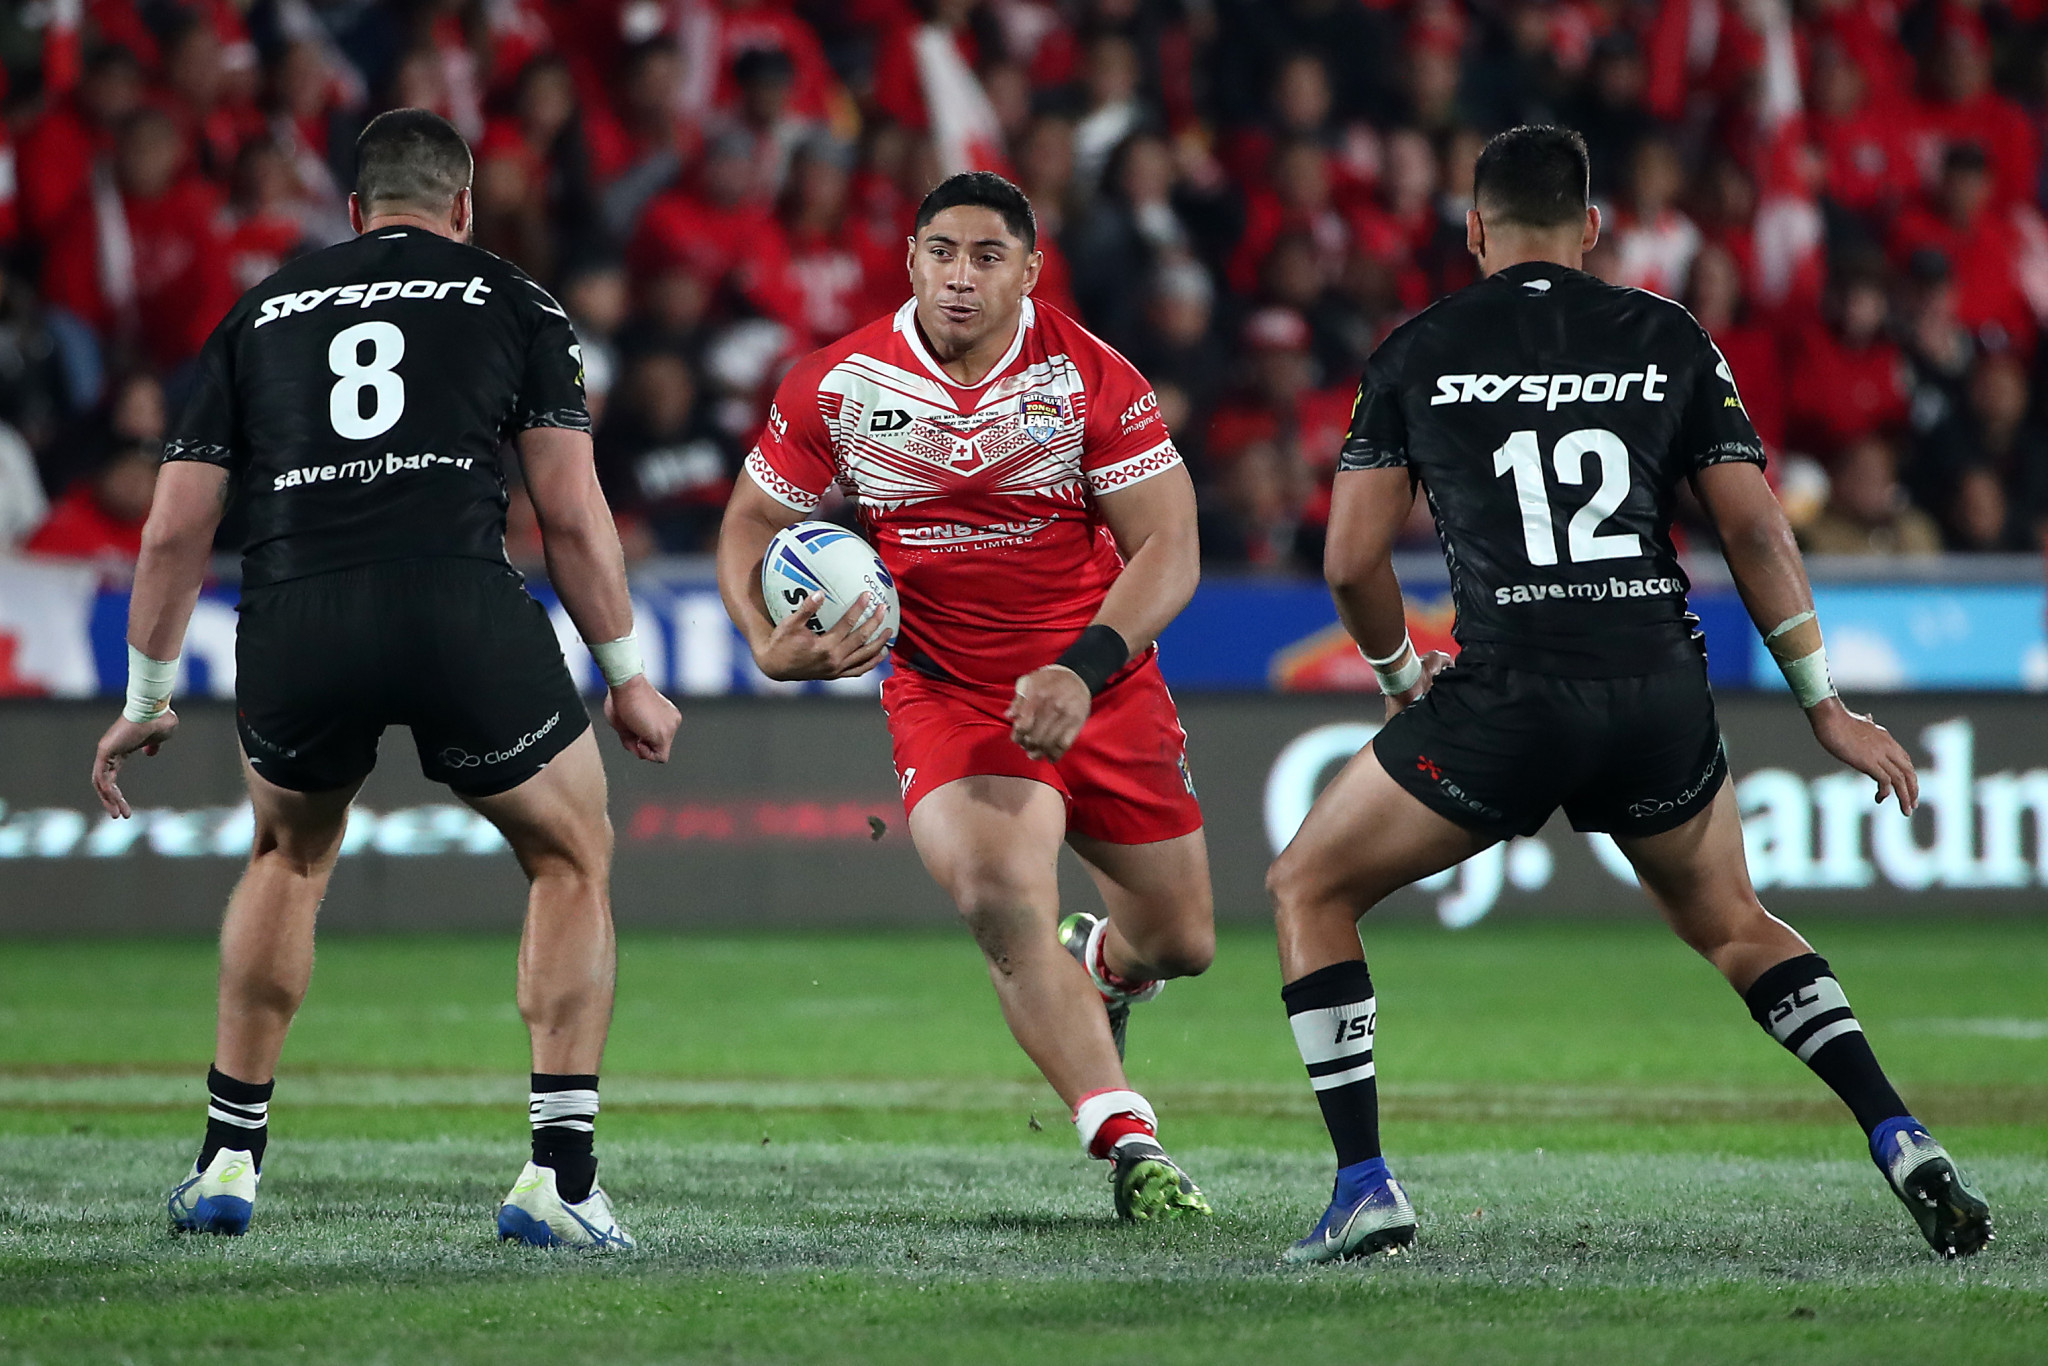 Tonga rugby league suspension leaves sport in crisis